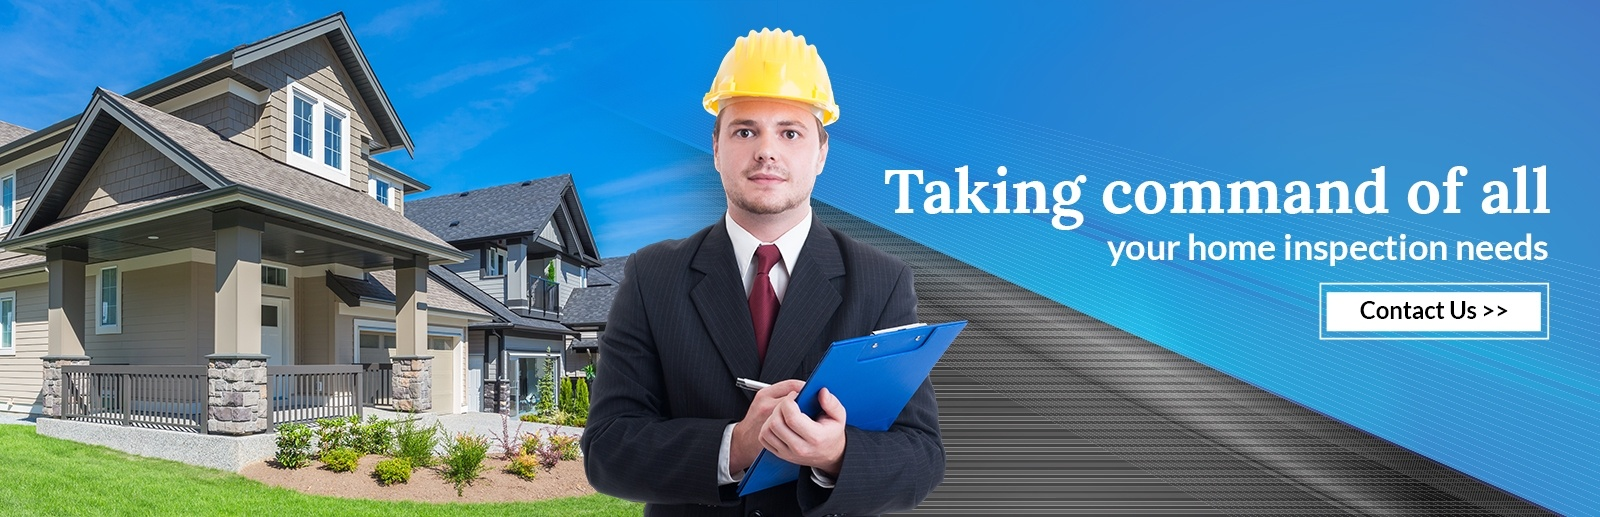 Home Inspector in Miramar FL